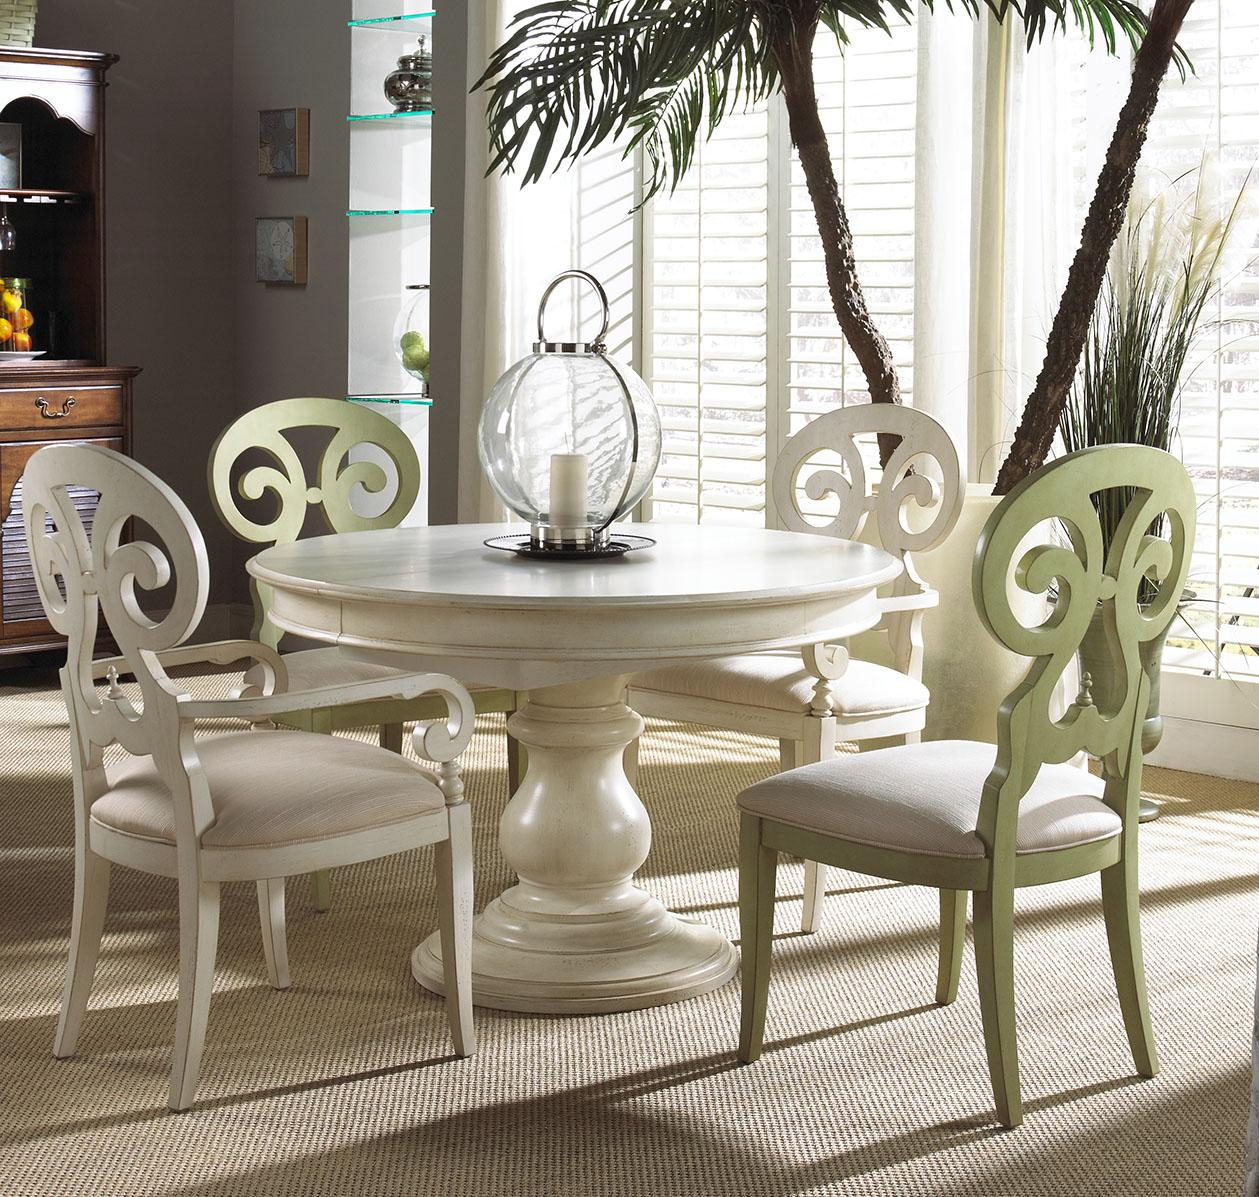 Fine Furniture Design Summer Home Elegant Round Dining Table   Stuckey  Furniture   Dining Room Table